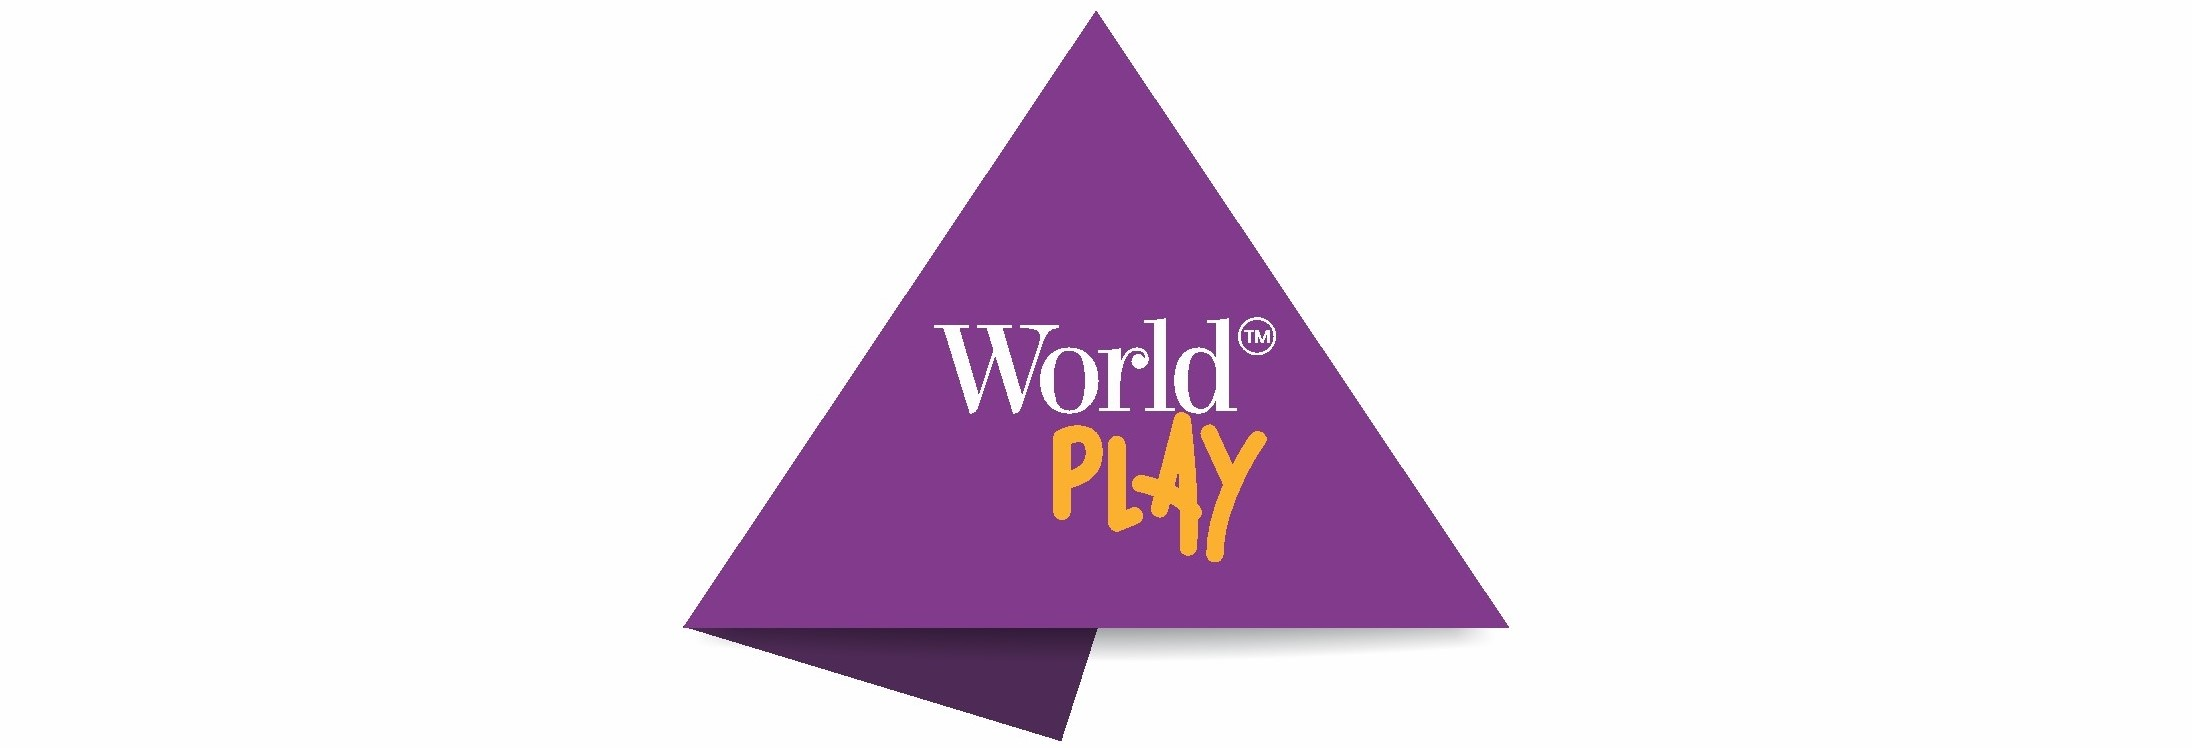 WorldPLAY Pyramid banner for Arihant Playground Equipment